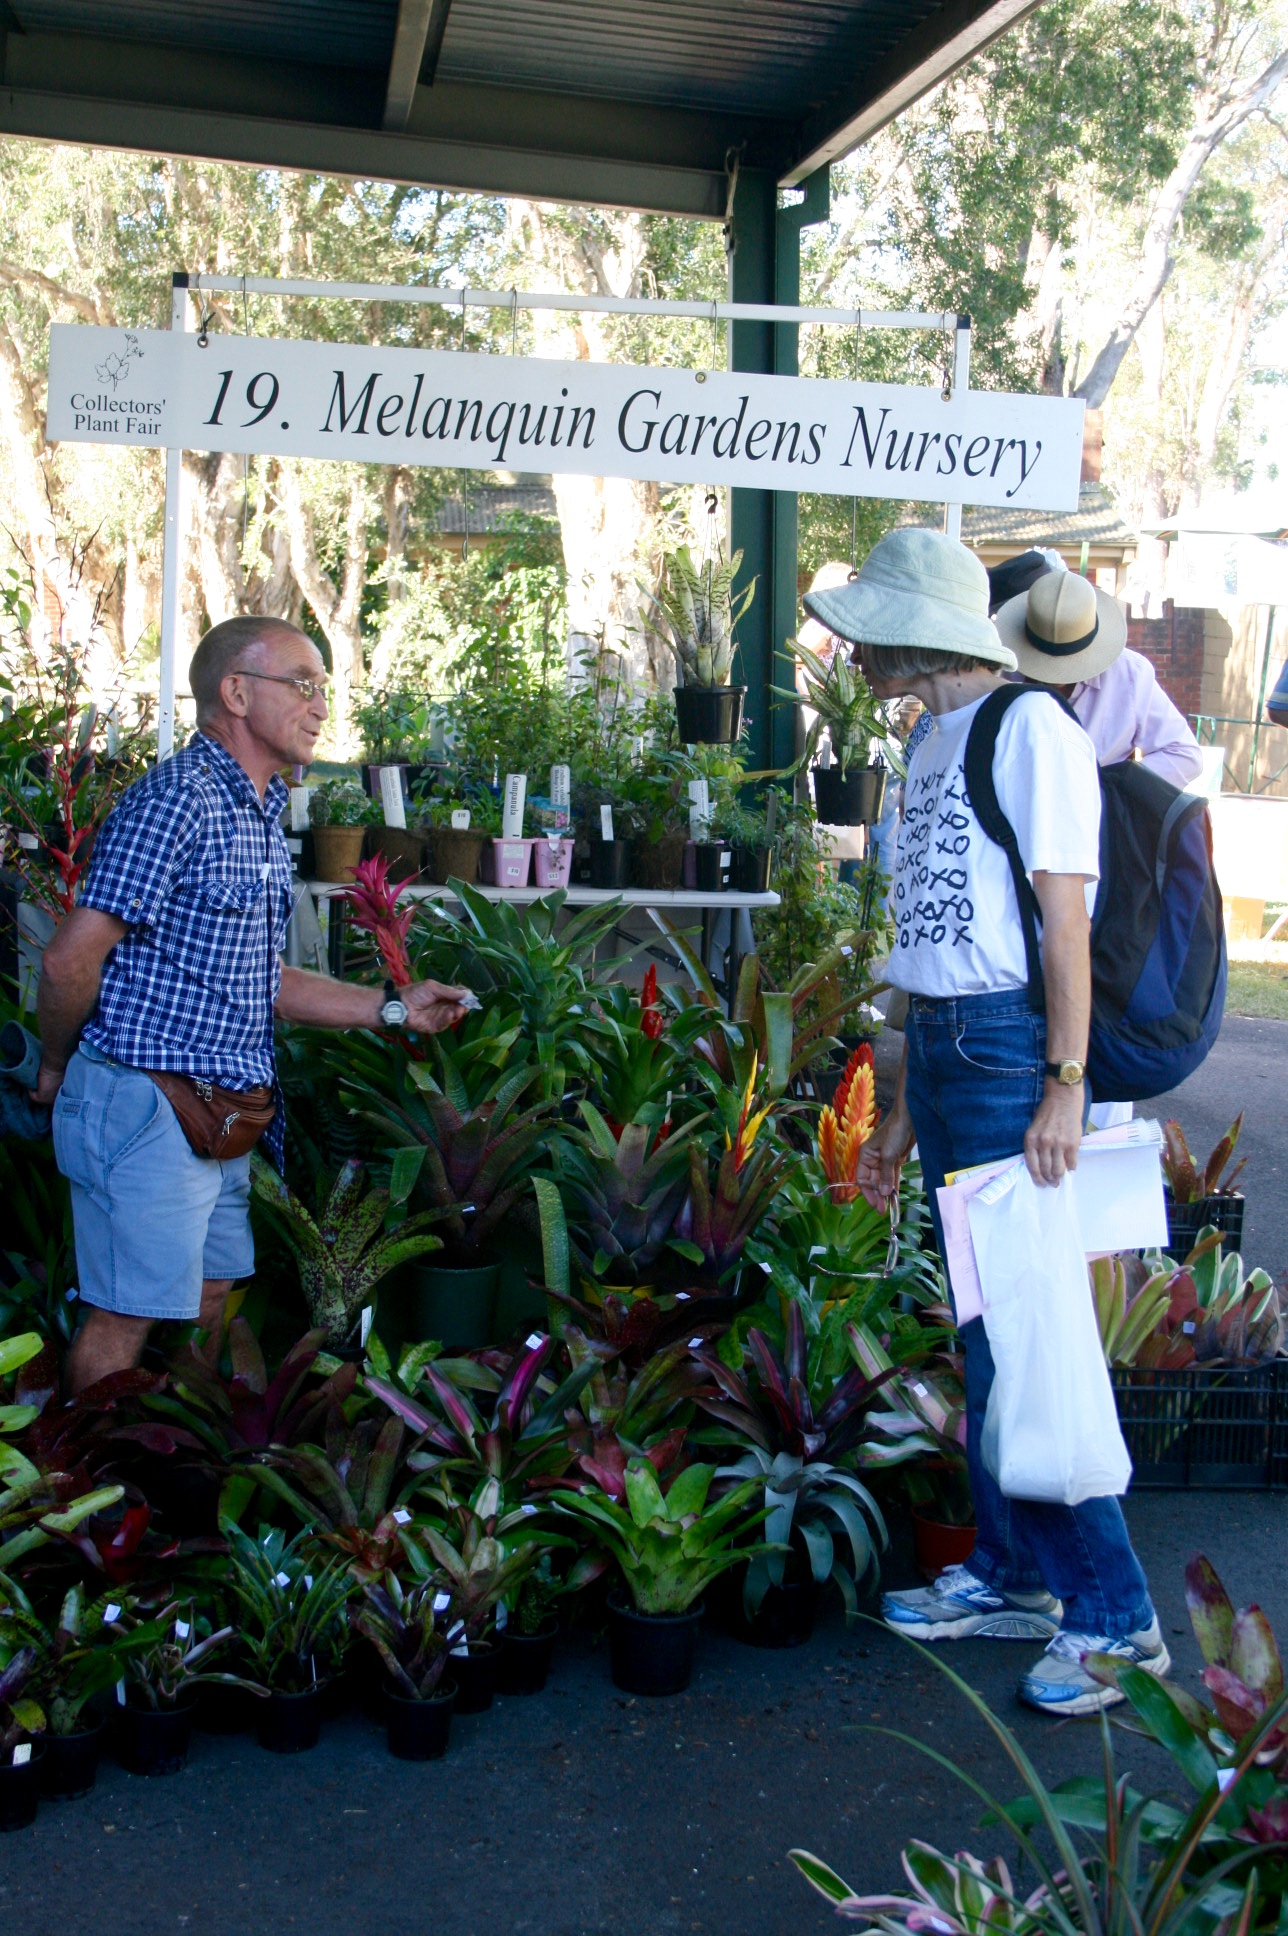 Gary Flemming at Collectors Plant Fair will be selling at Concord Bromeliad Fair